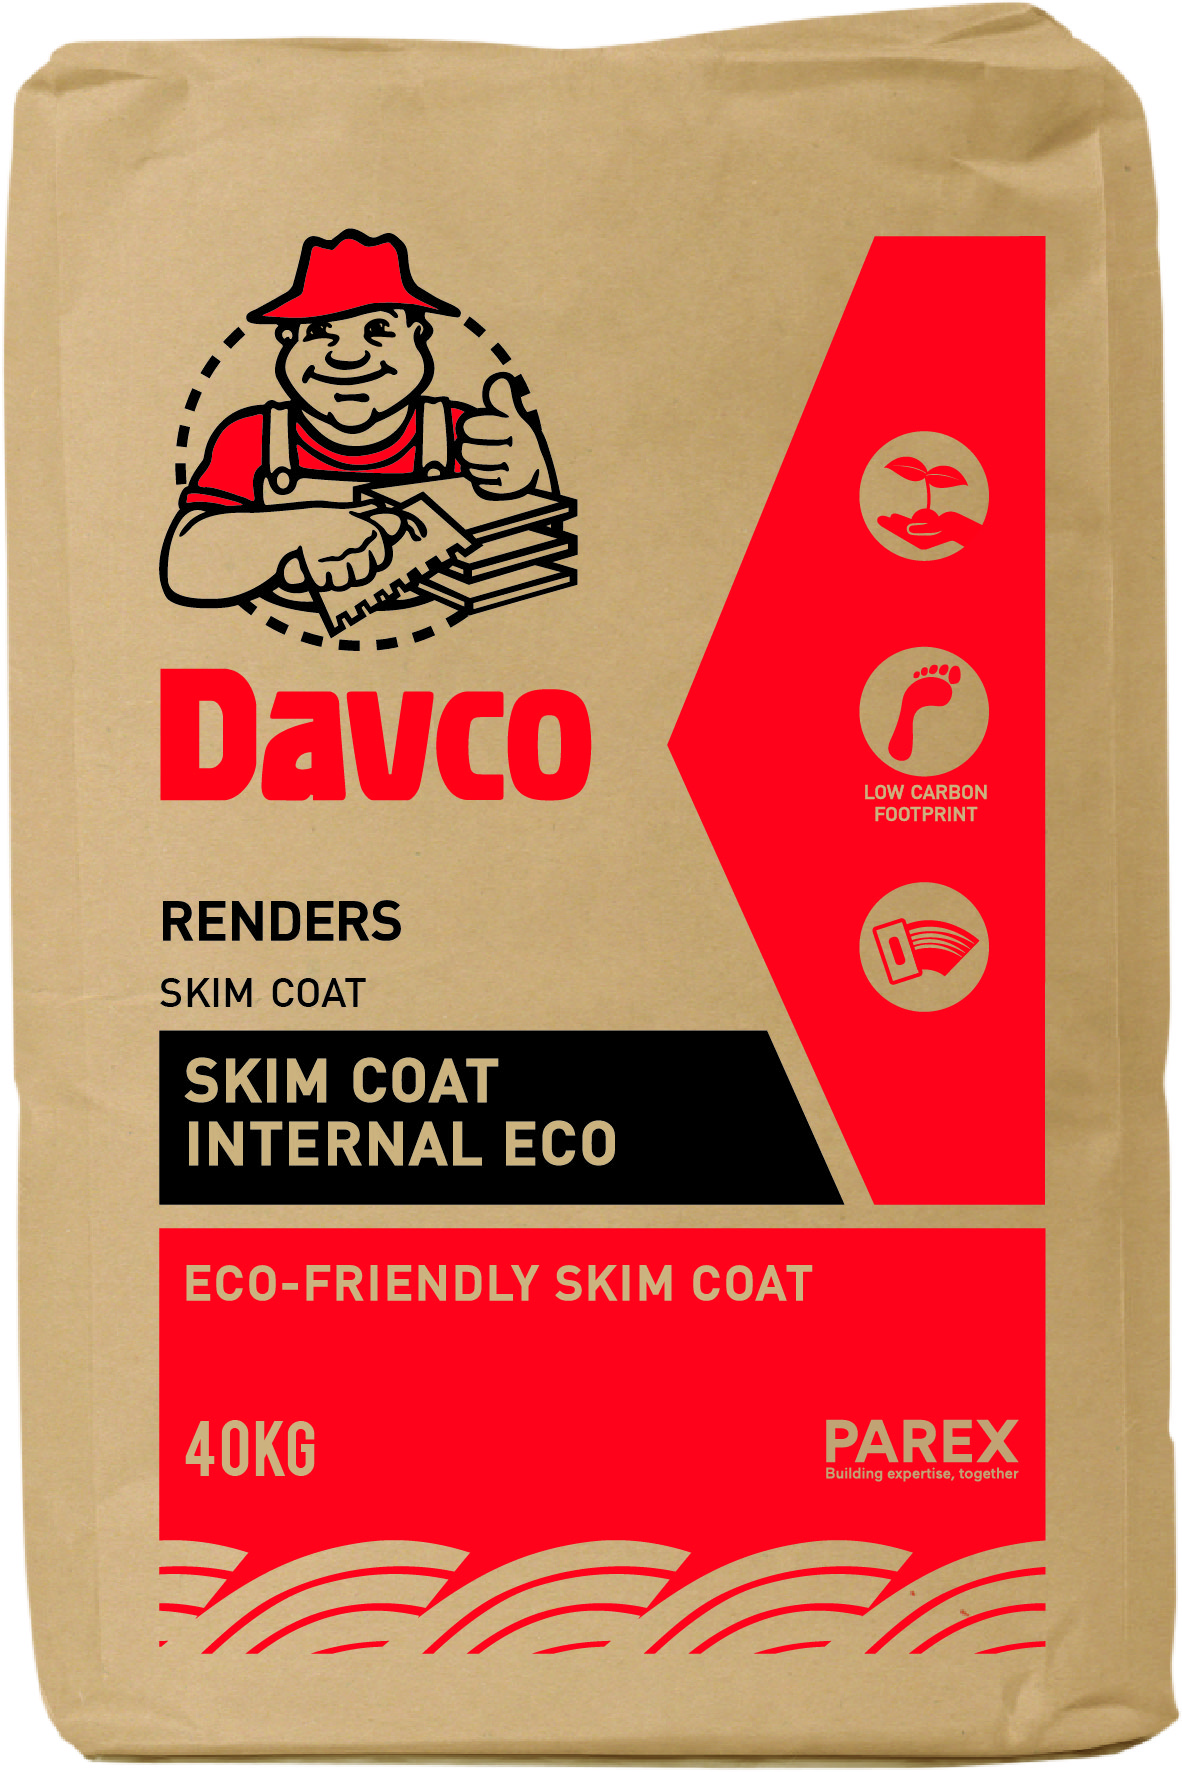 Davco Skim Coat (Internal) ECO